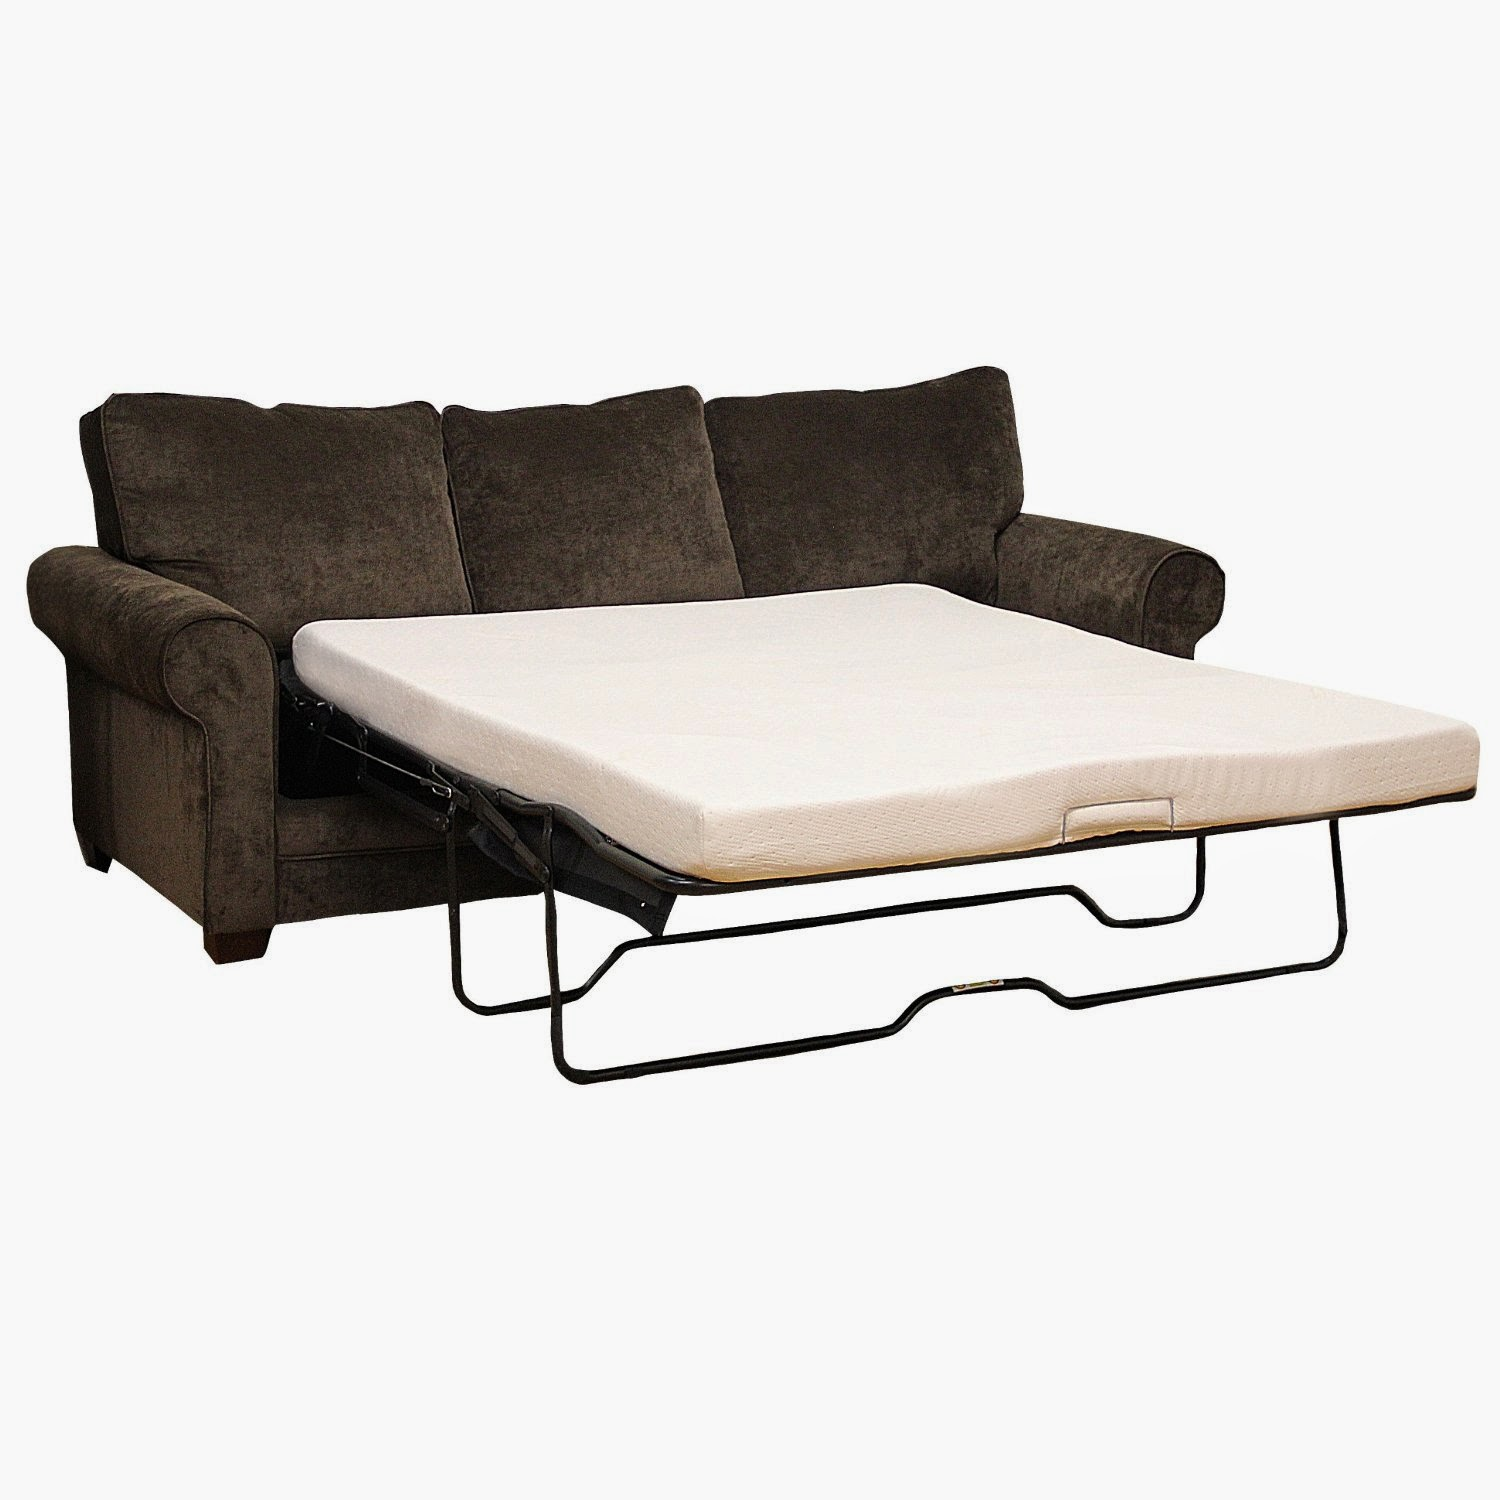 Fold Out Beds For Small Spaces Fold Out Chair Sofa Fold Away Bed Kids Fold Out Chair Sofa